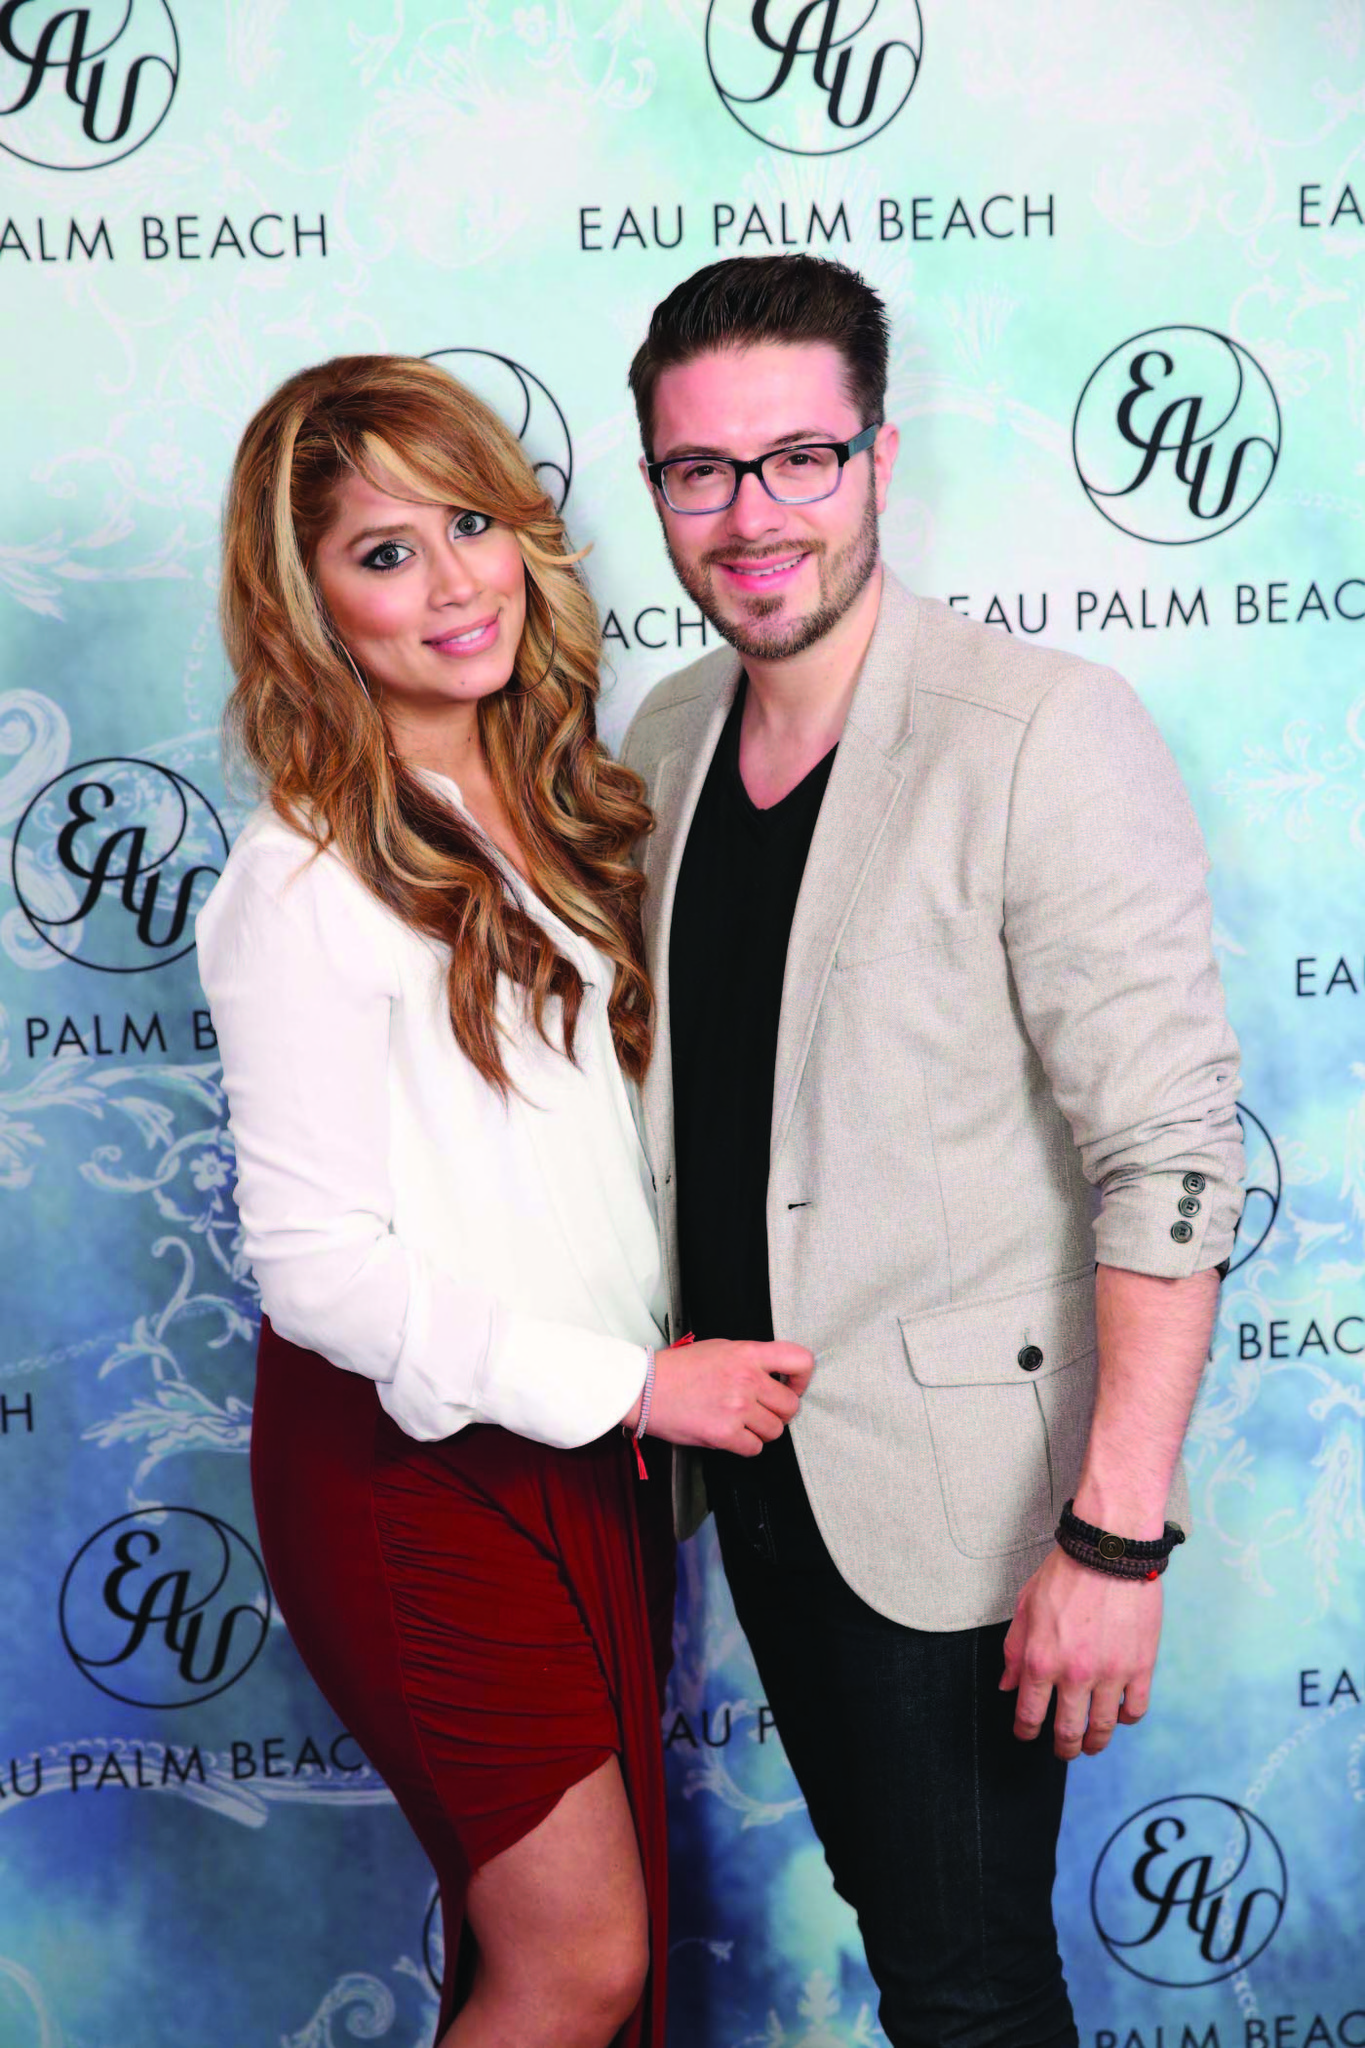 Society Scene photos - Leyicet Gokey, left, and Danny Gokey came out to support an evening of music hosted by Eau Palm Beach Resort & Spa. The concert benefited Agape International Missions (AIM), which rescues children from sex trafficking.